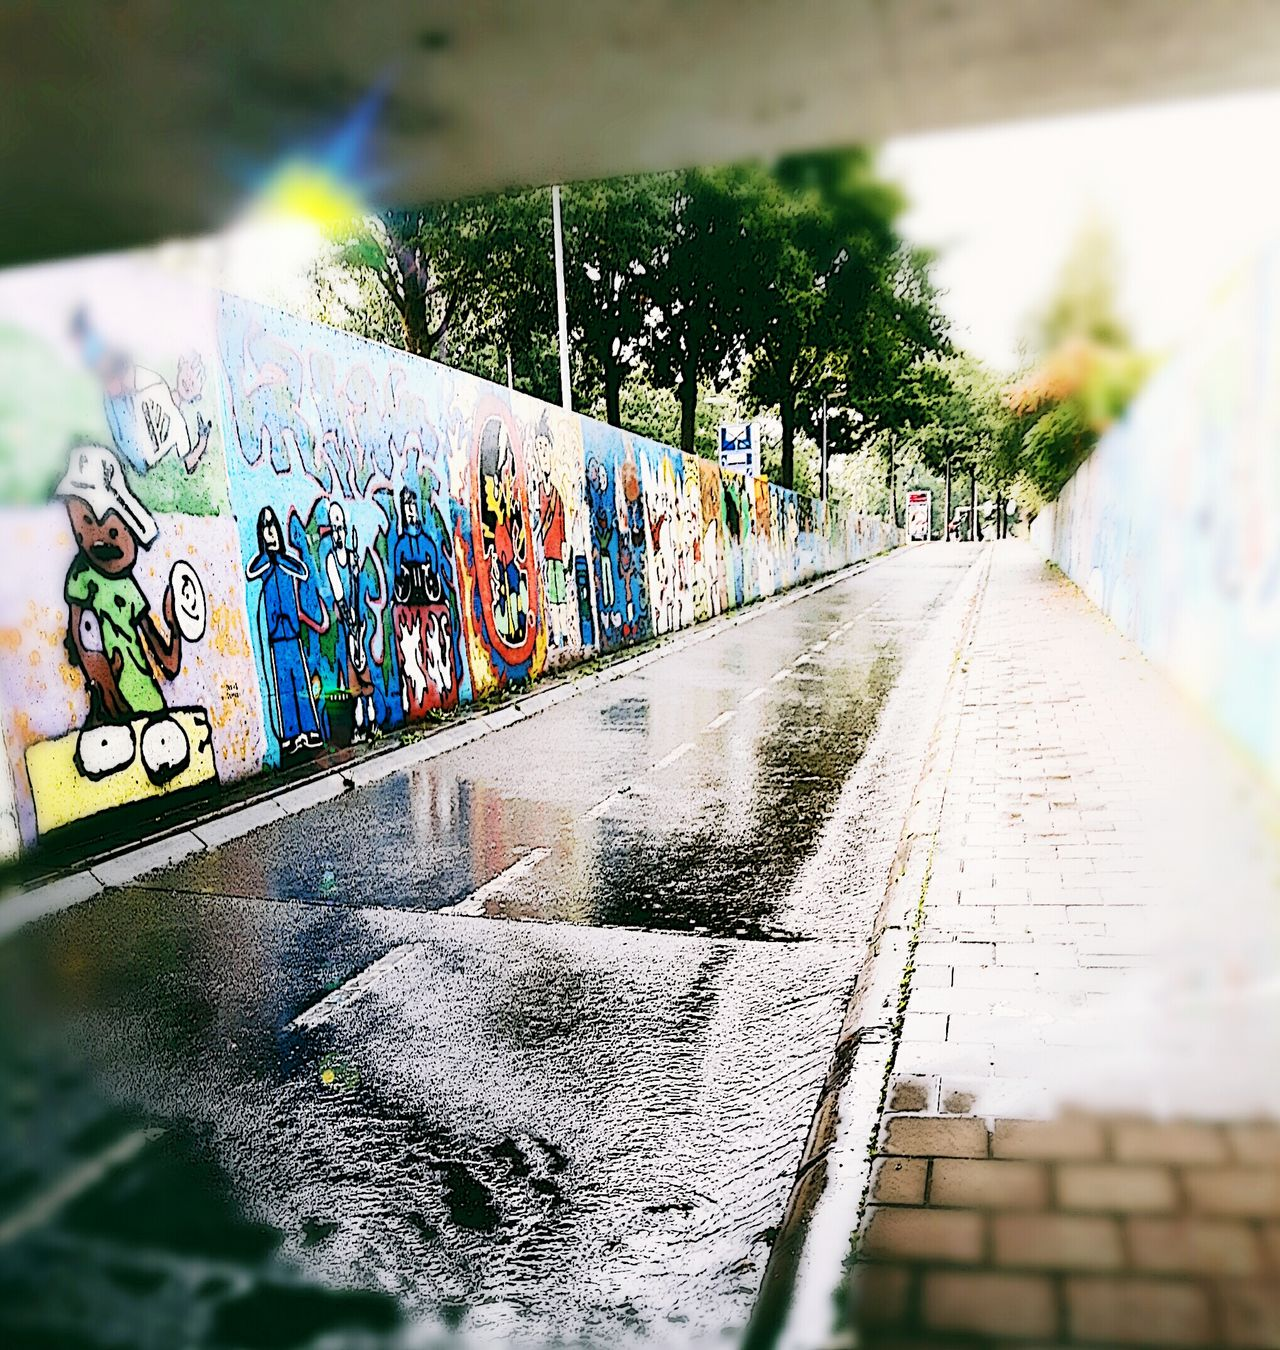 Season  Wet Weather Window Glass - Material Rain Selective Focus Concrete Pedestrian Walkway Multi Colored Creativity Purity Scool School Graffiti